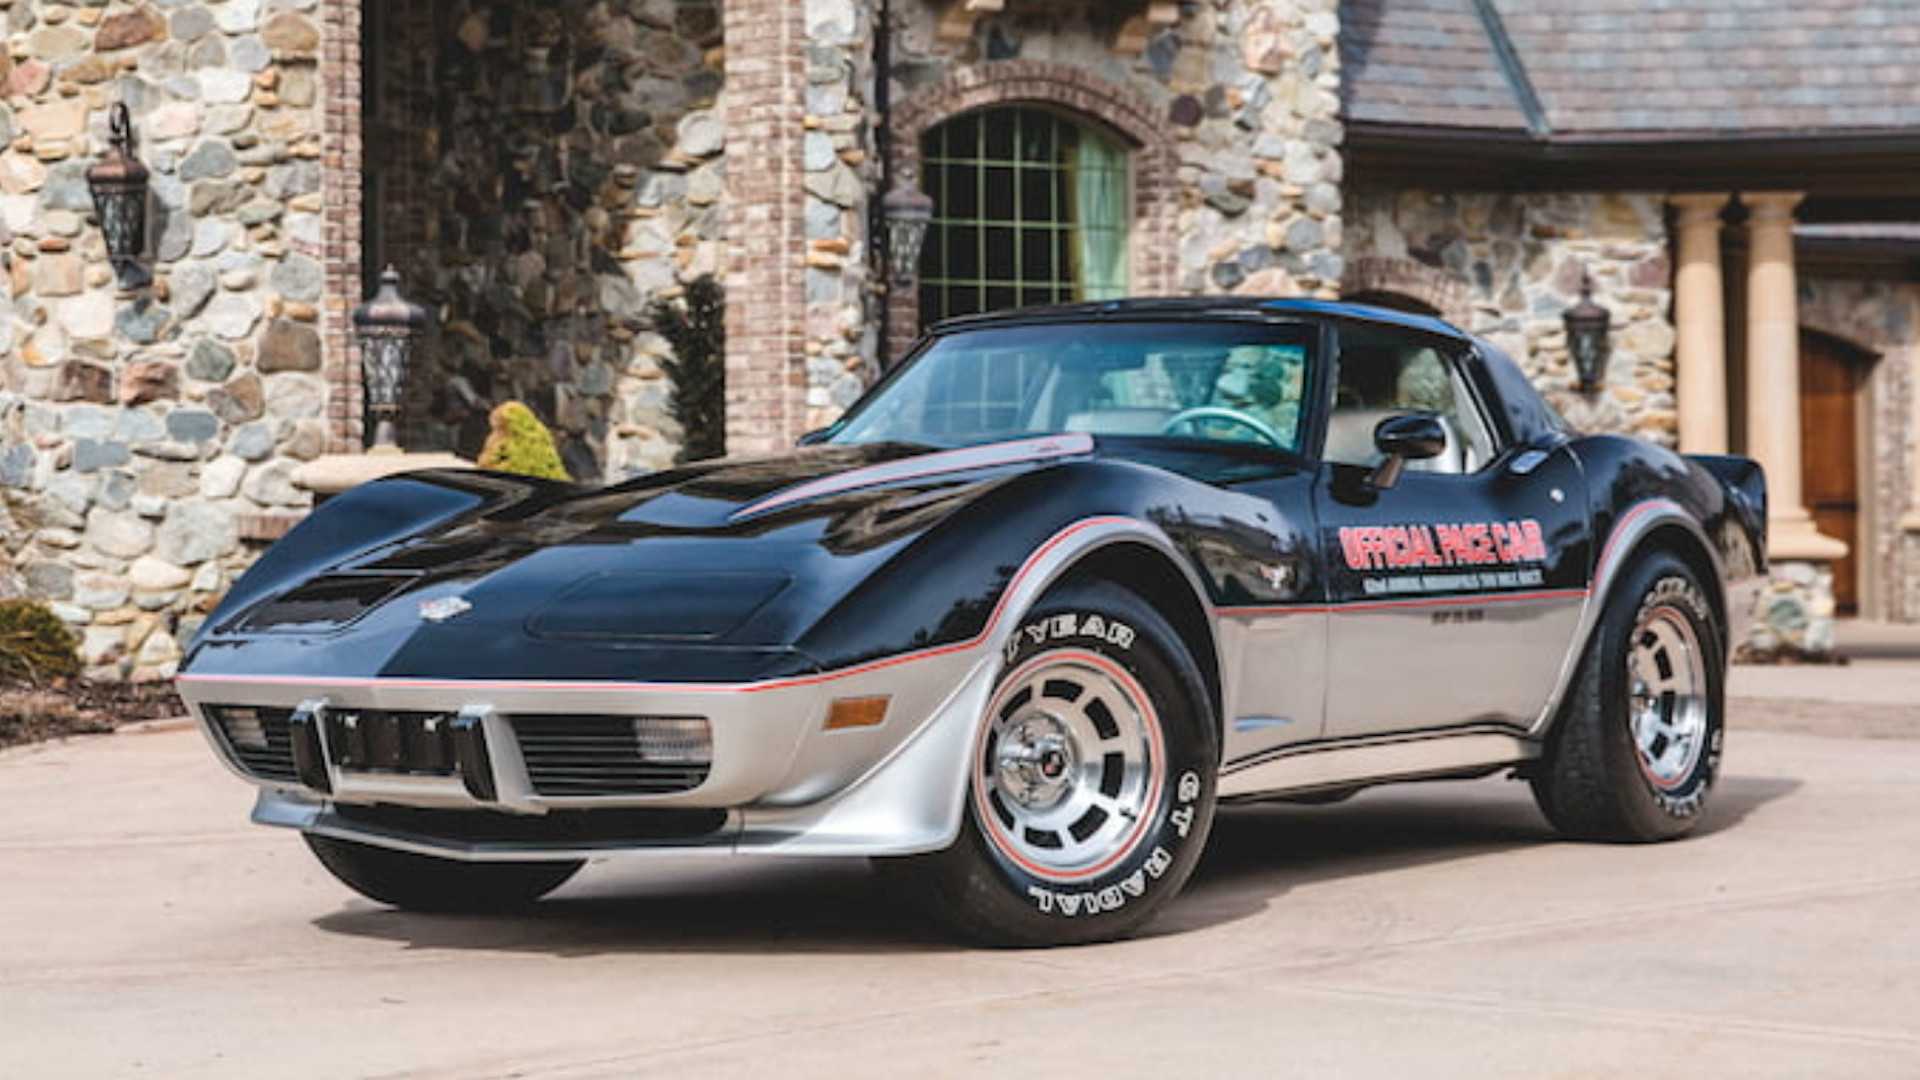 Chevrolet Corvette Indy 500 Pace Car collection